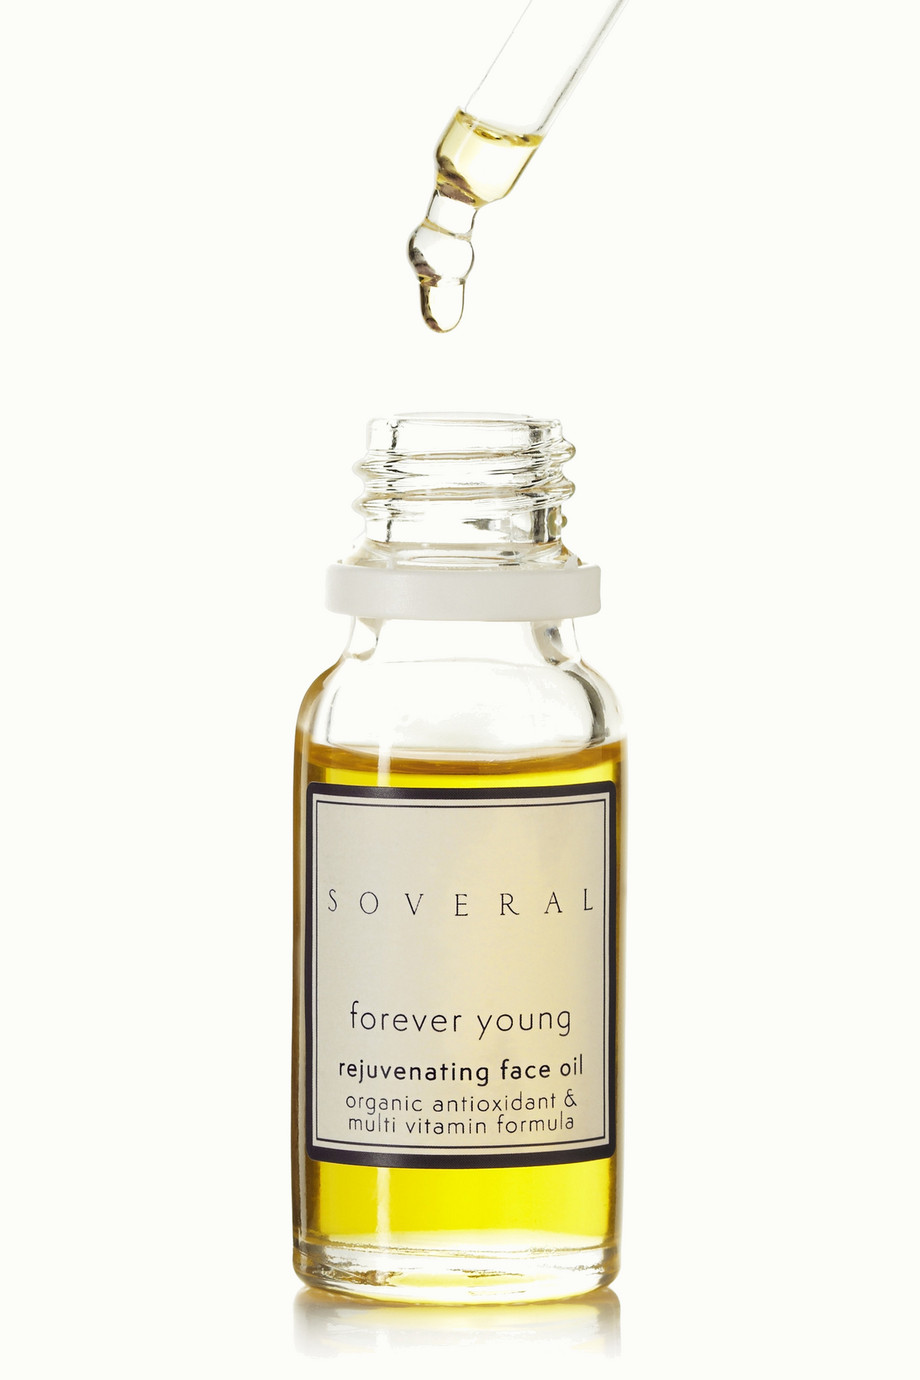 SOVERAL Forever Young Rejuvenating Face Oil, 15 ml – Gesichtsöl